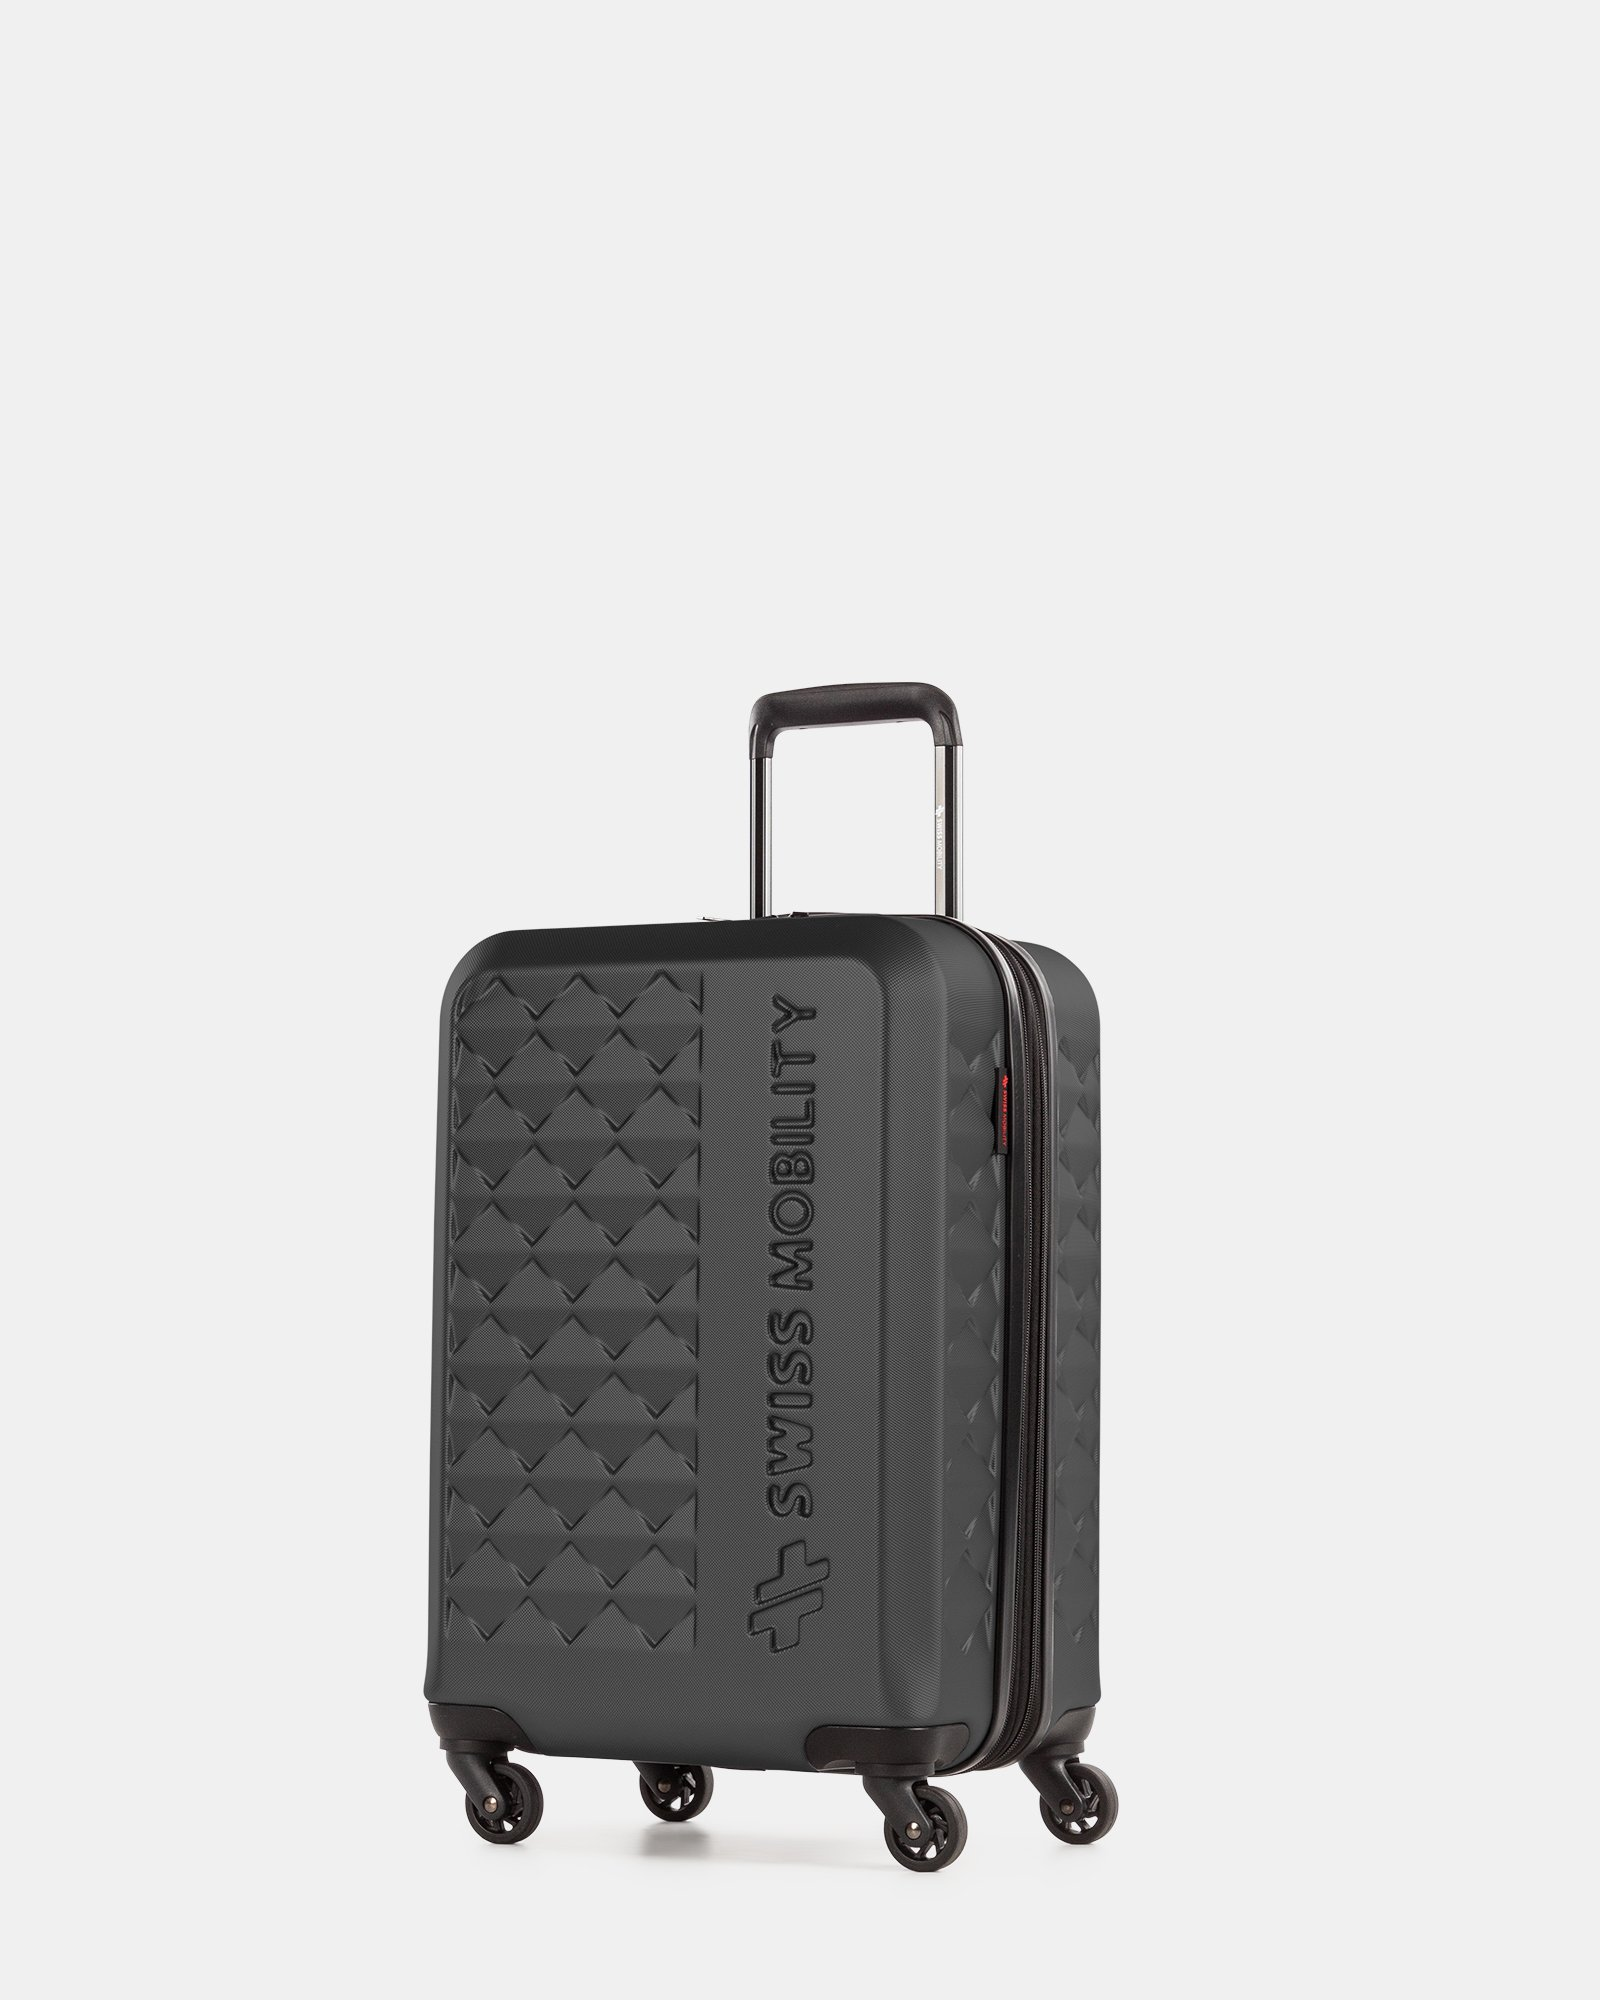 Ridge-Hardside Carry-on - Swiss Mobility - Zoom